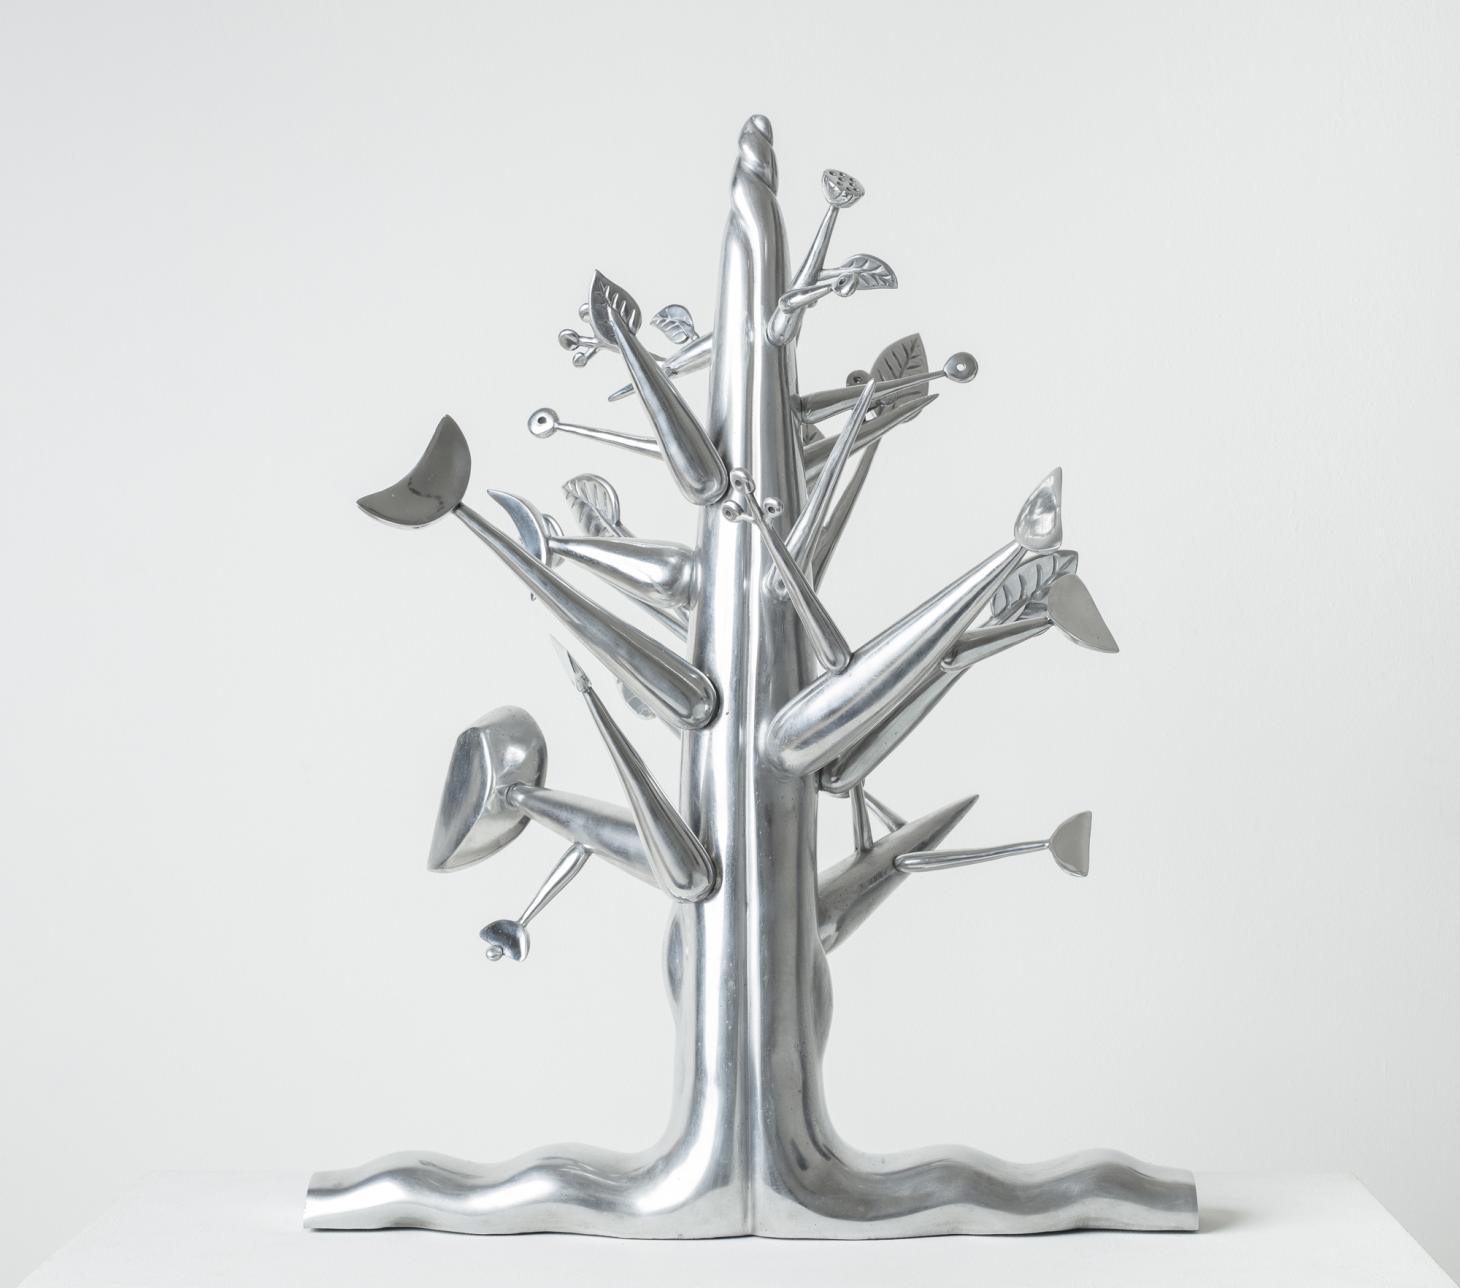 Ibrahim El-Salahi, Meditation Tree, courtesy of Vigo Gallery